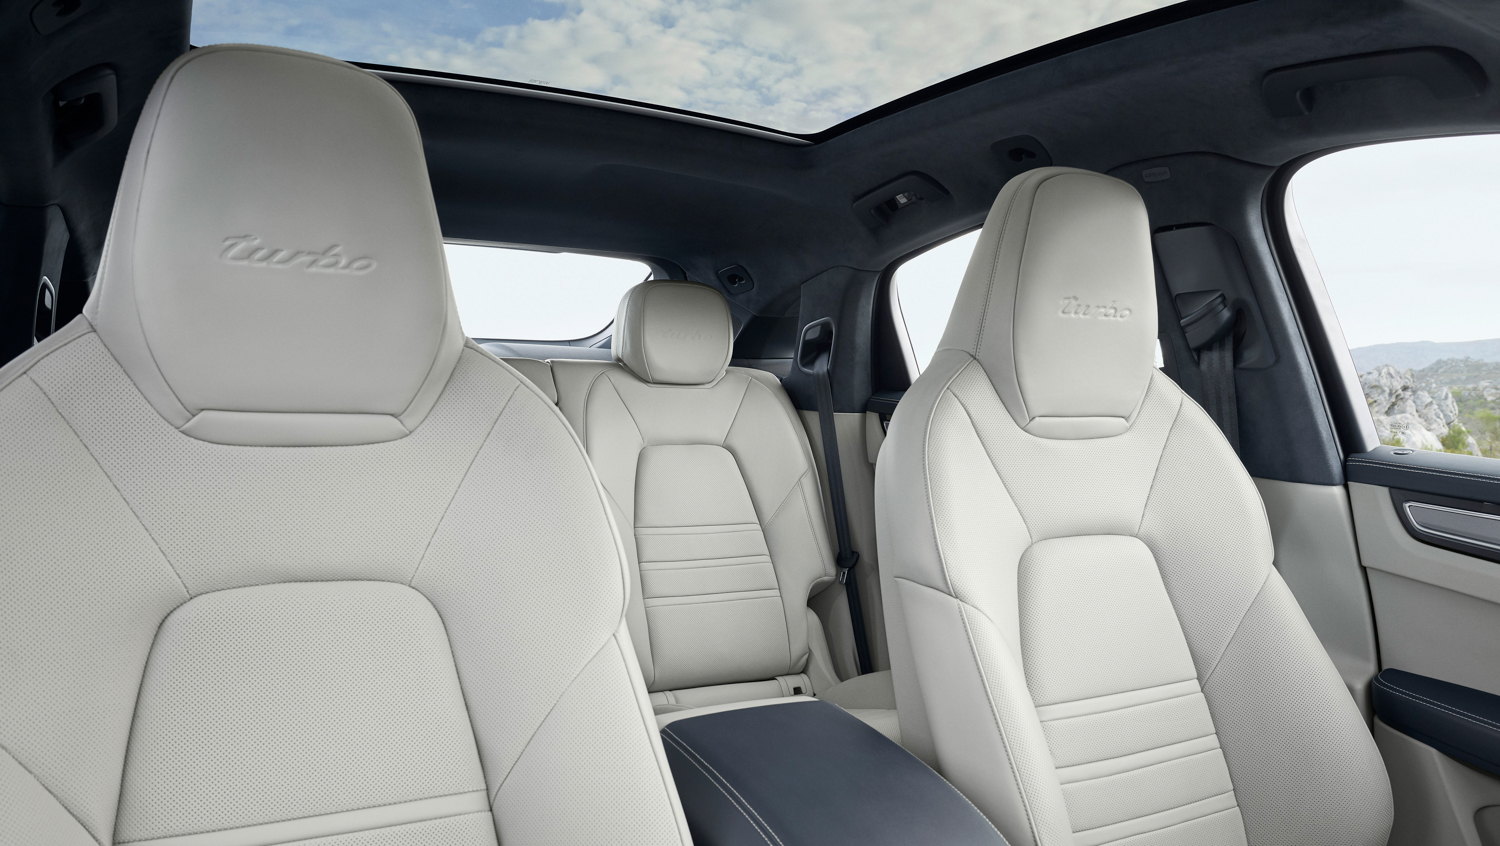 Porsche Cayenne Coupé interior seats